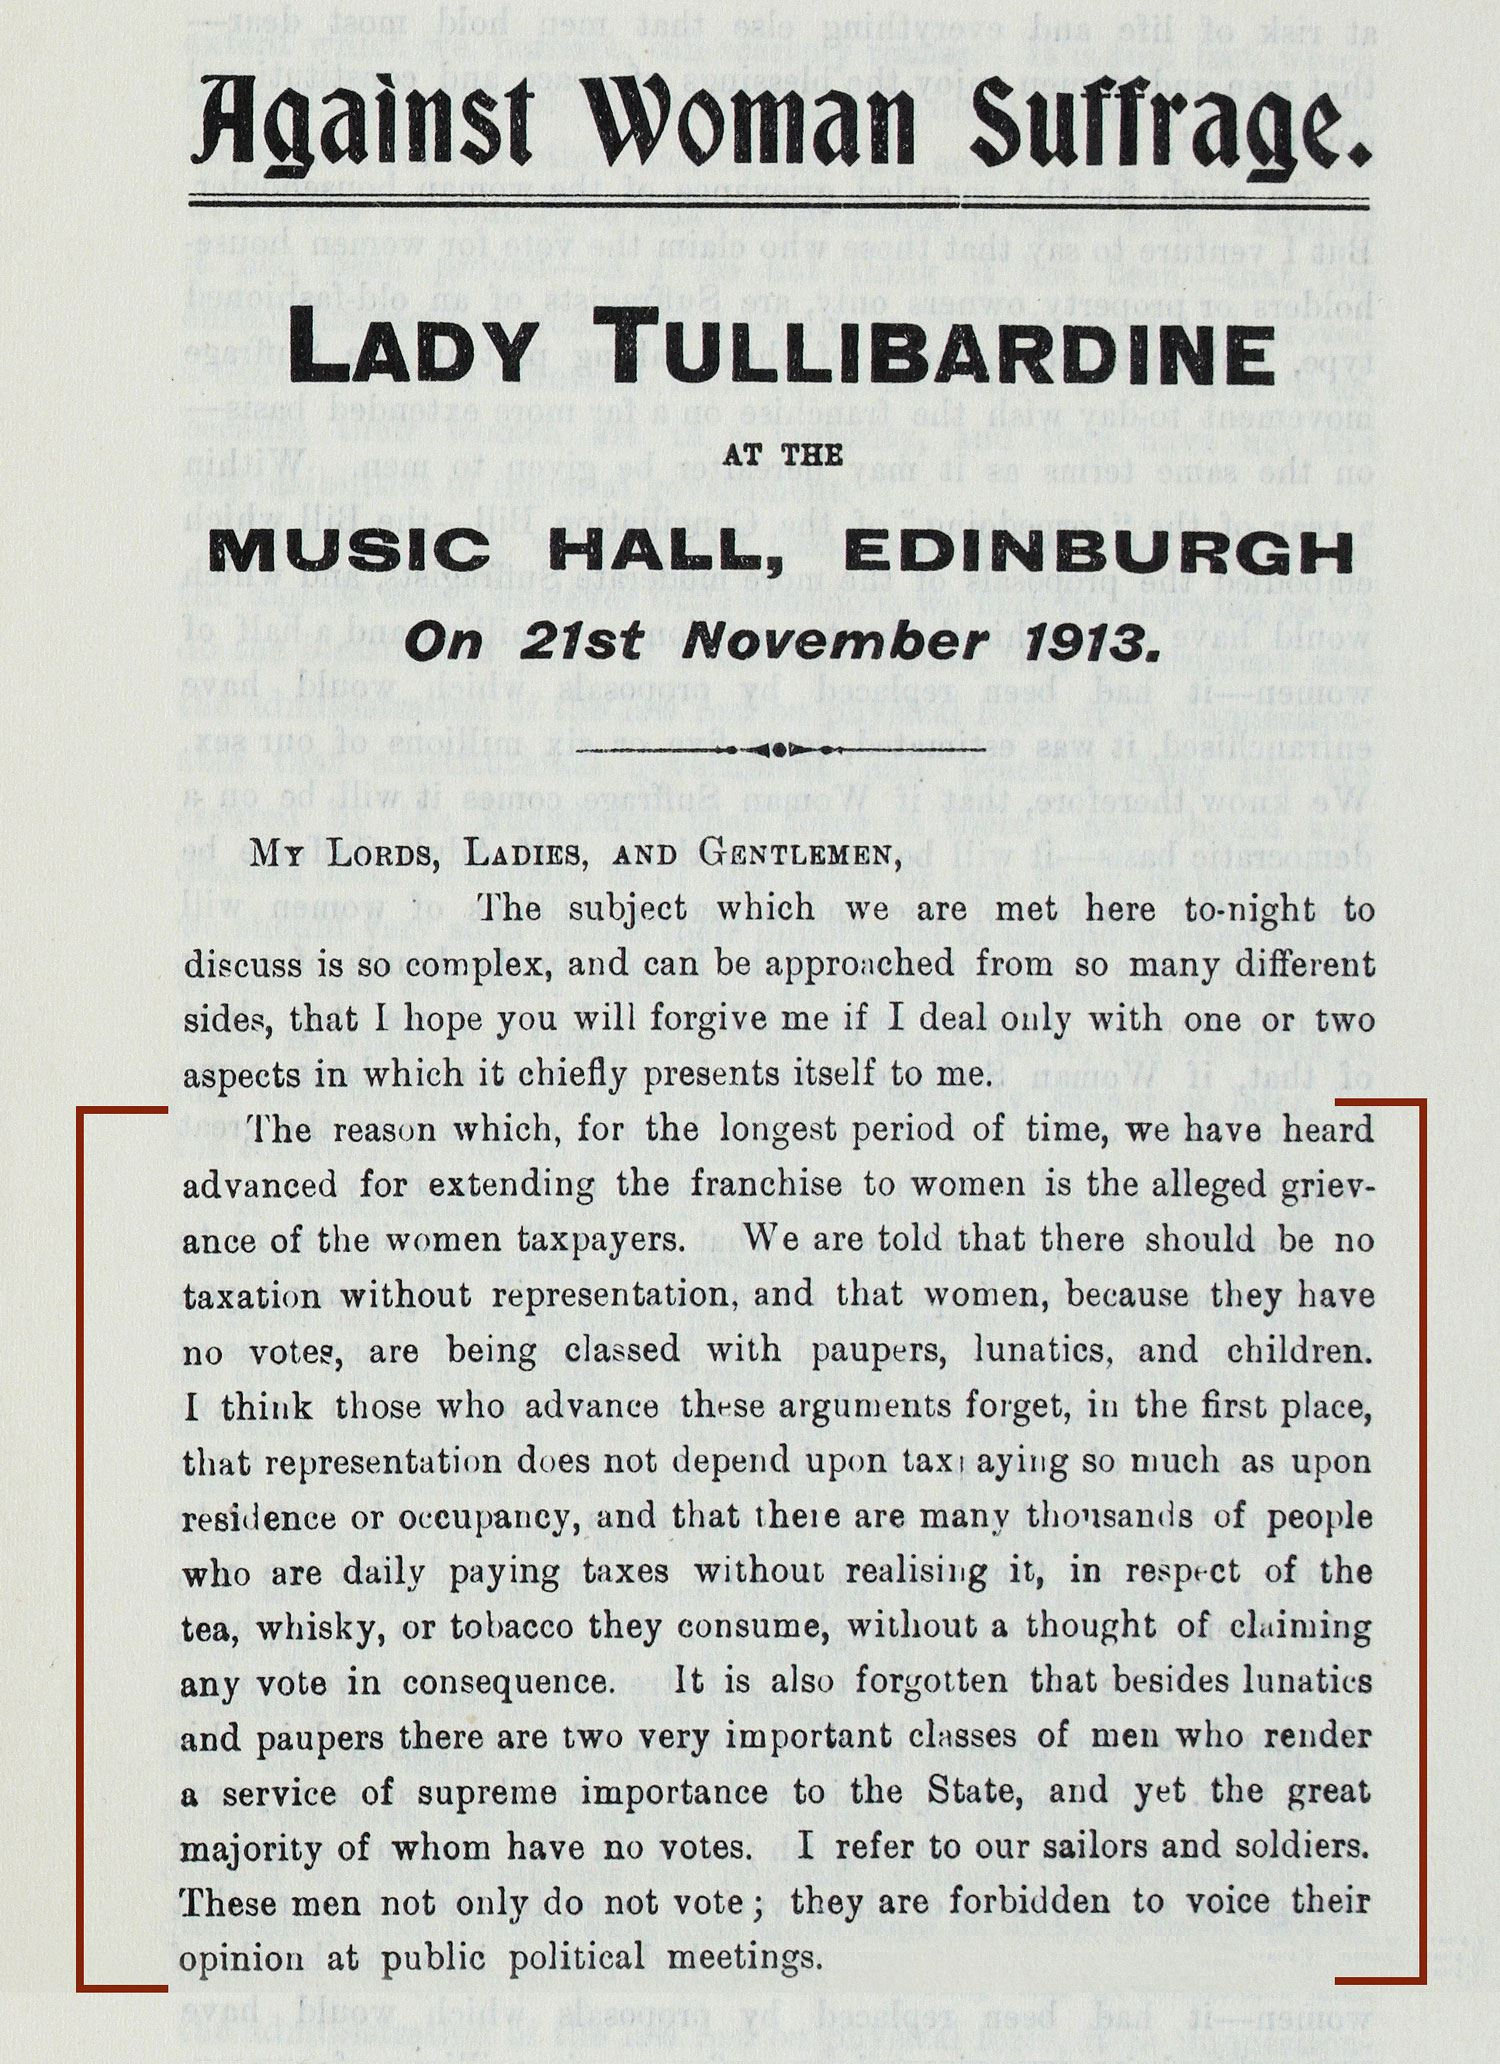 Printed account of speech given by Lady Tullibardine, 1913